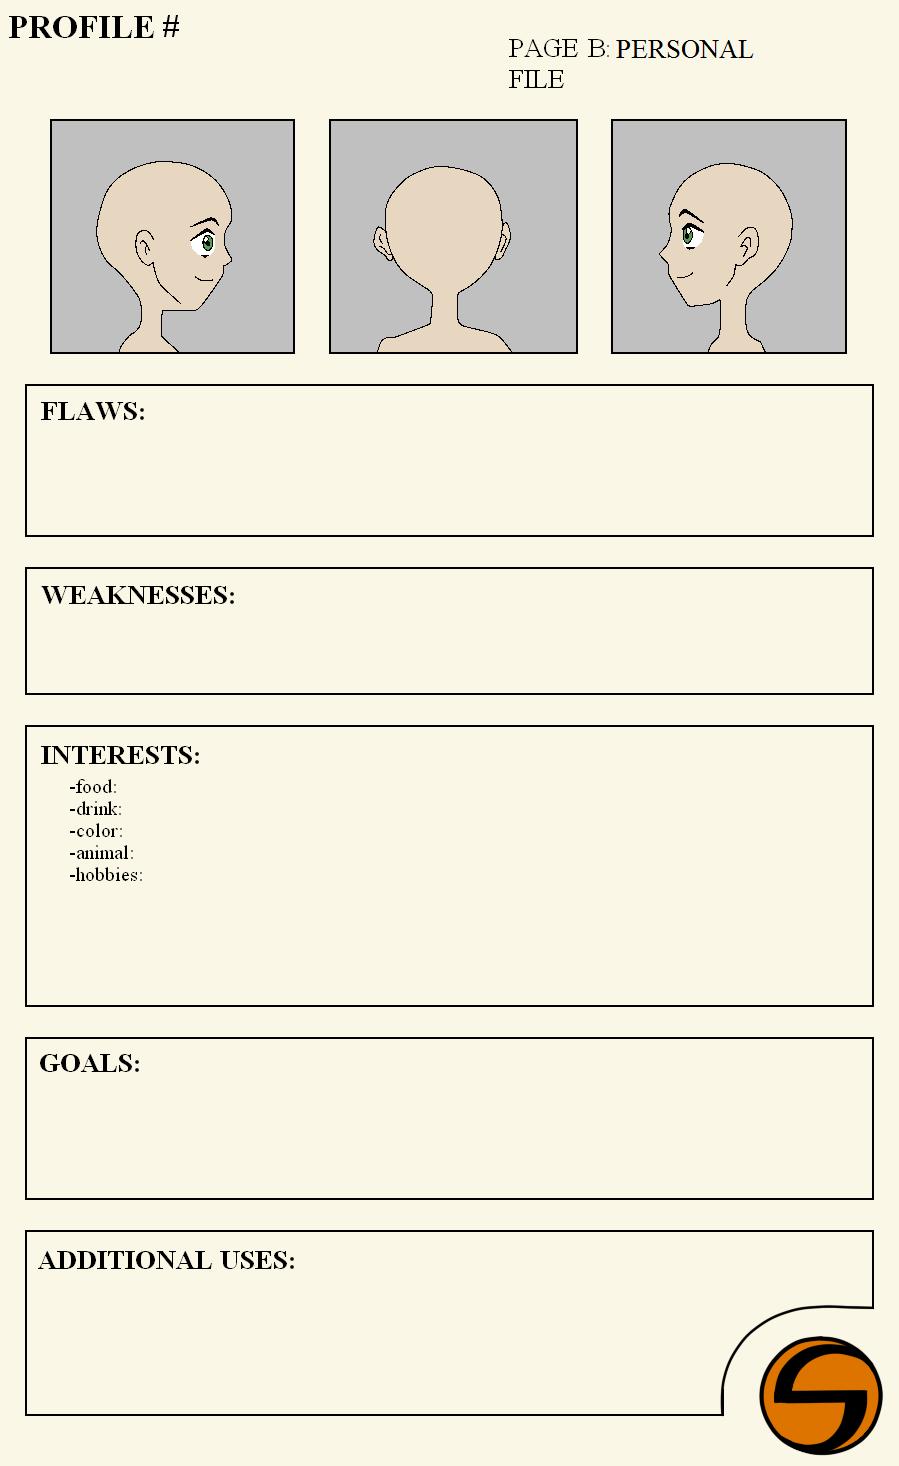 blank character copy paste character profiles blank favourites by tashy lou on deviantart 10096